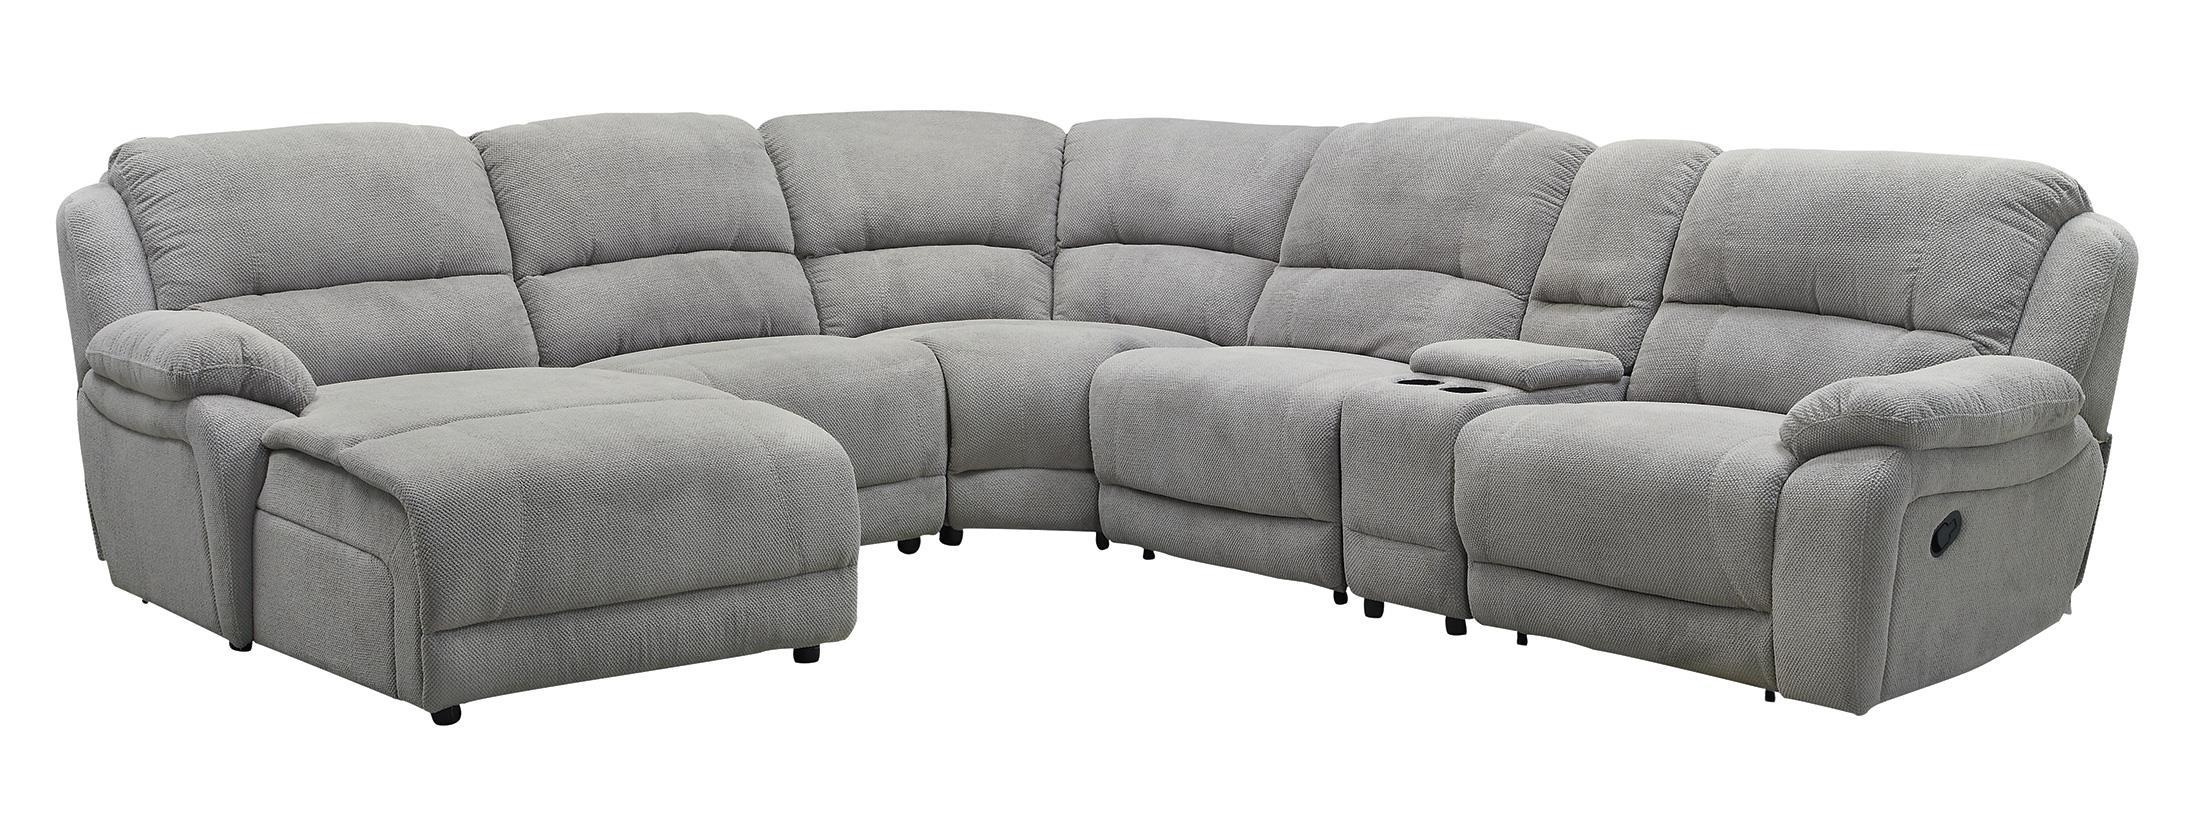 Coaster Mackenzie Silver 6 Piece Reclining Sectional Sofa With For 6 Piece Sectional Sofas Couches (Image 7 of 20)